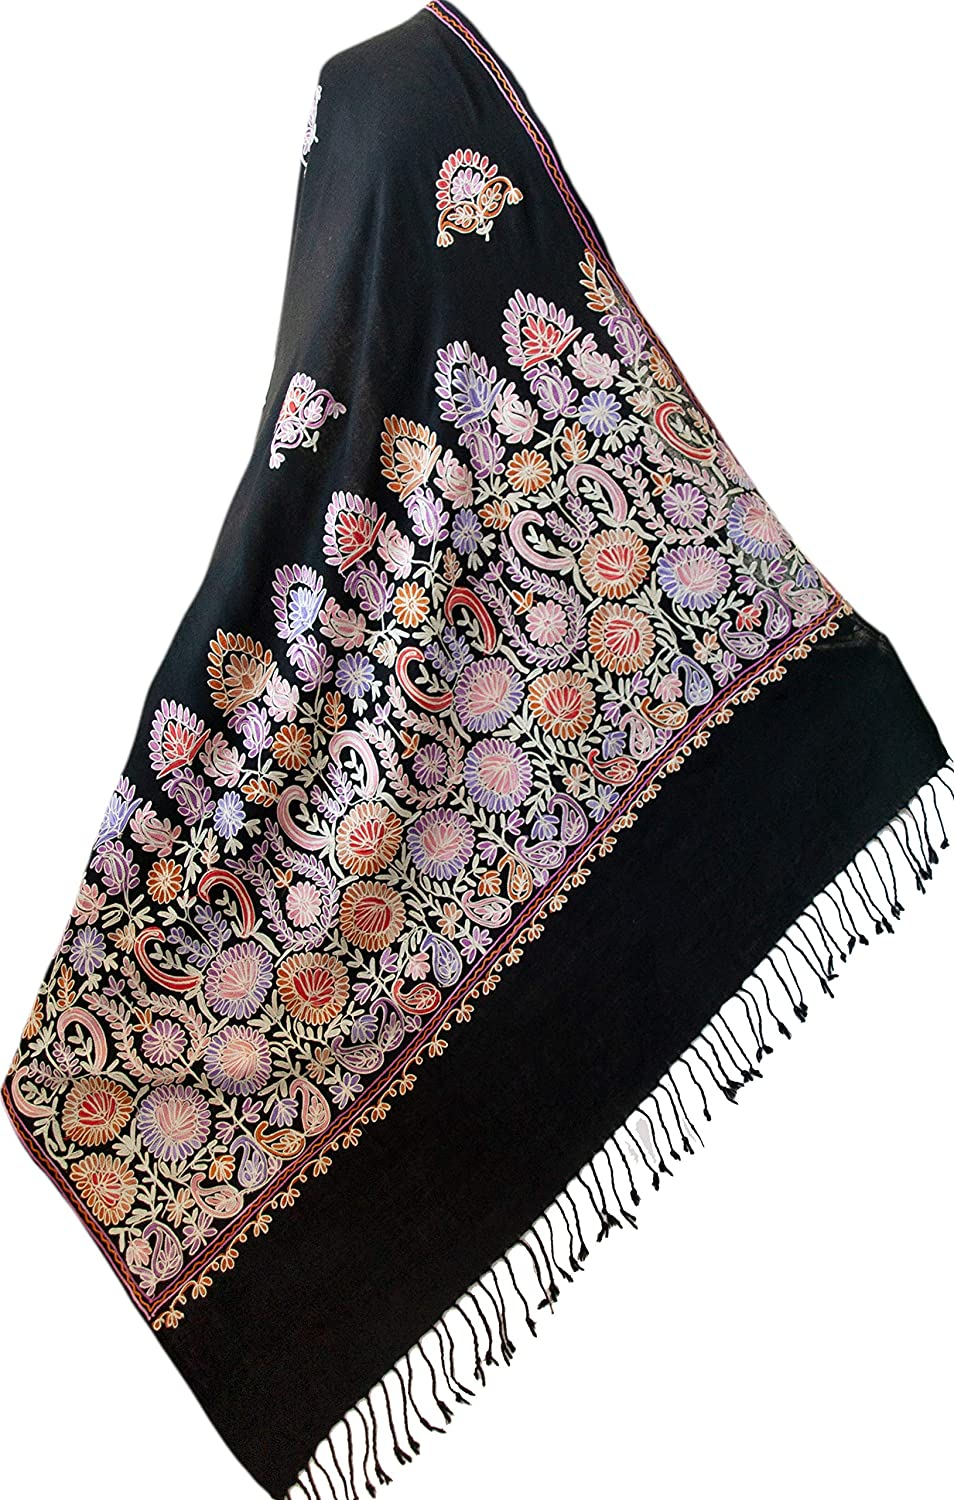 Colorful Crewel Embroidery on Black Wool Shawl Pashmina Style Embroidered Shawl